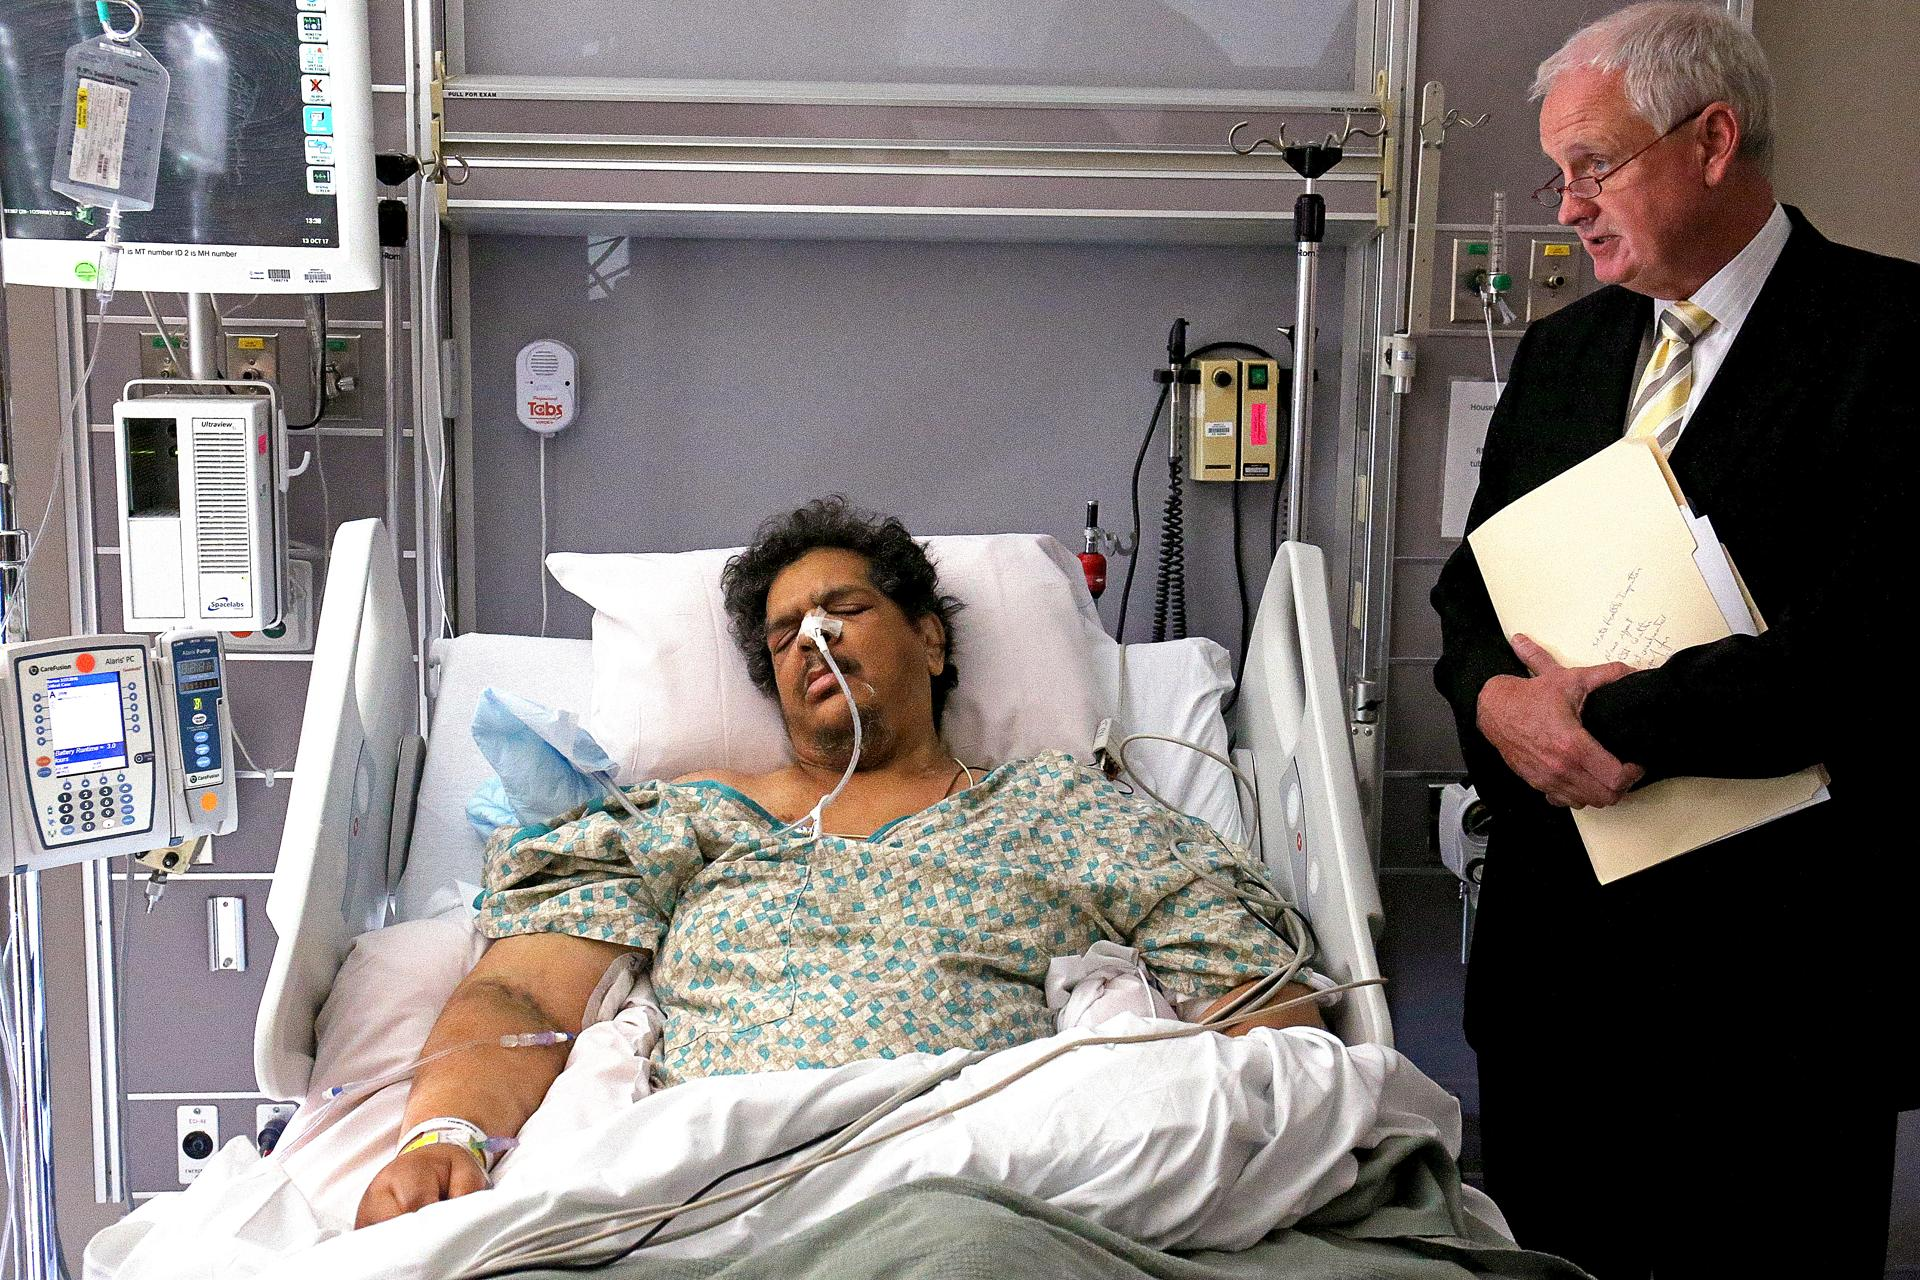 Walter Rice was arraigned Friday at Morton Hospital in Taunton, with defense attorney James Murphy at his side.